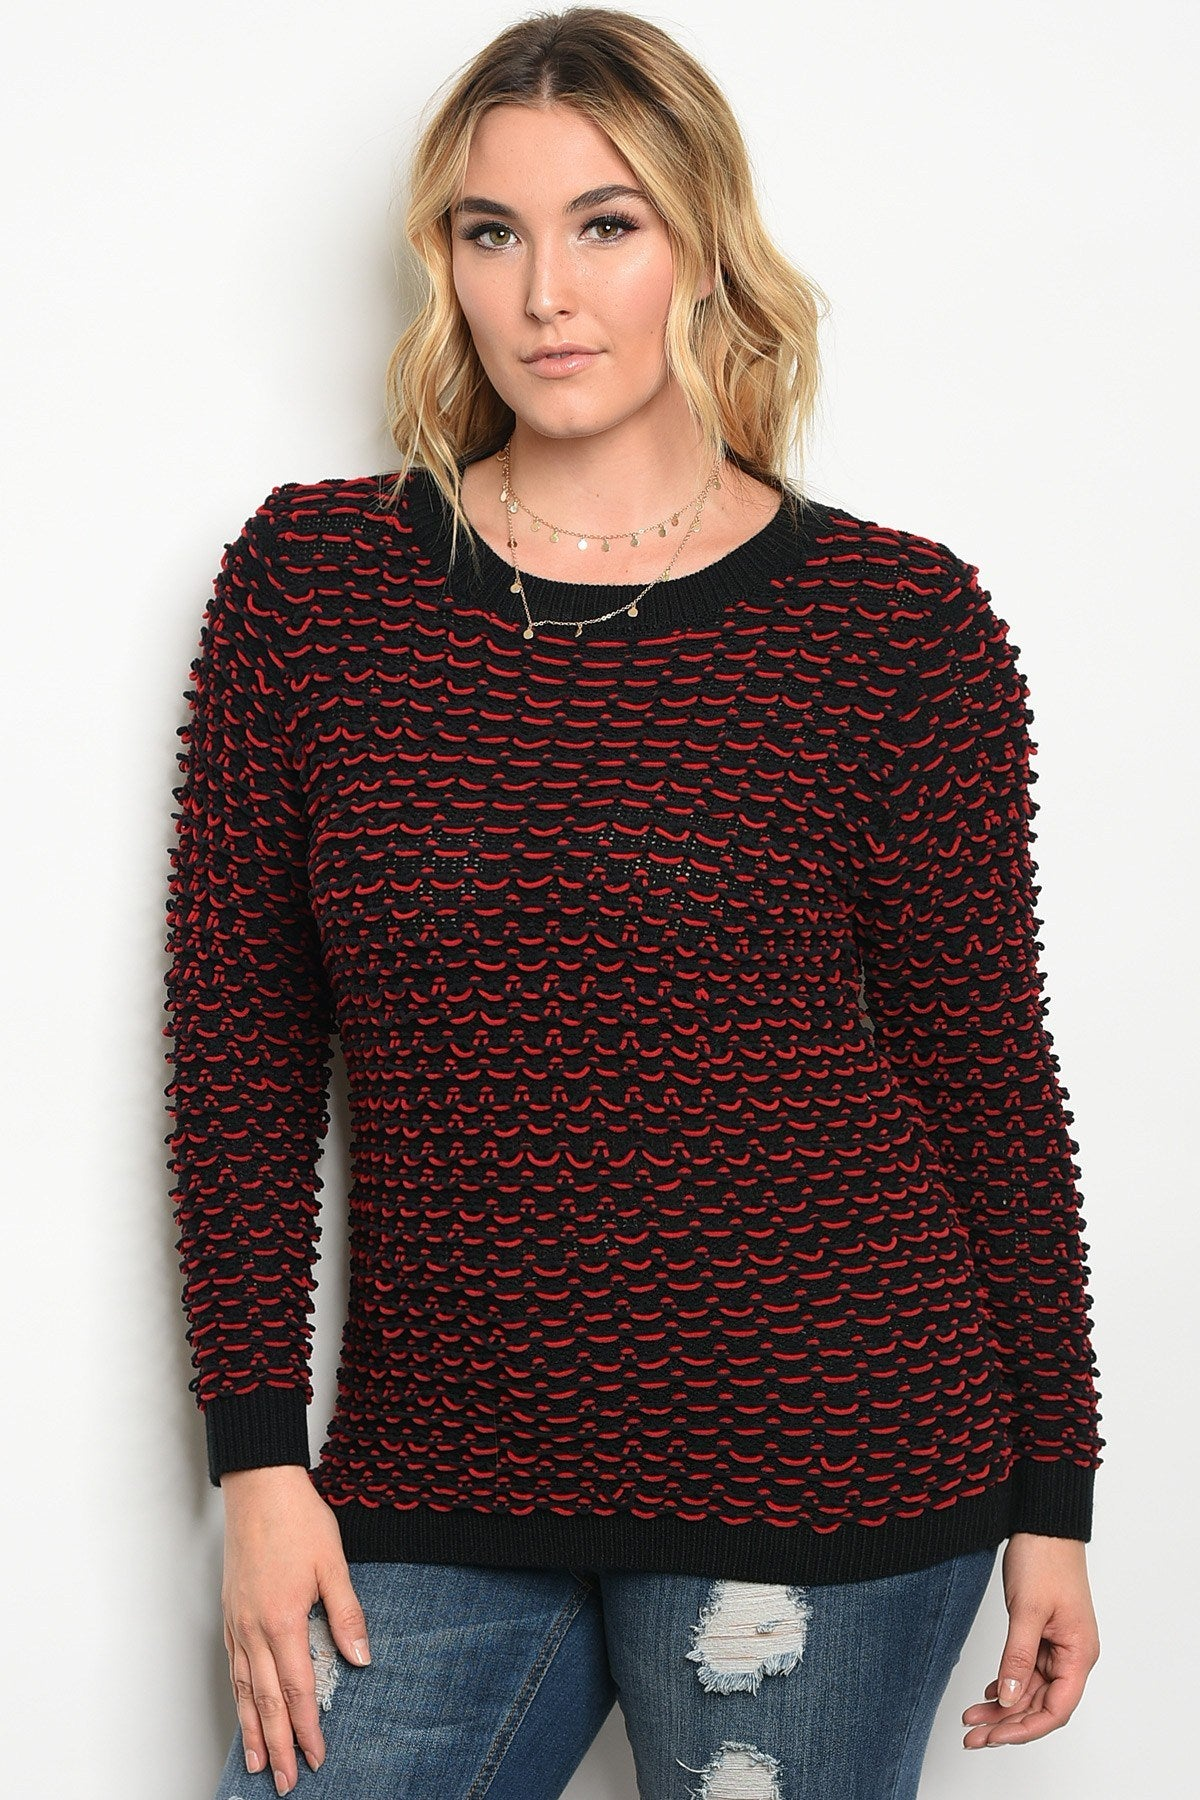 Plus size knit sweater top with a crew neckline.-1XL-MY UPSCALE STORE